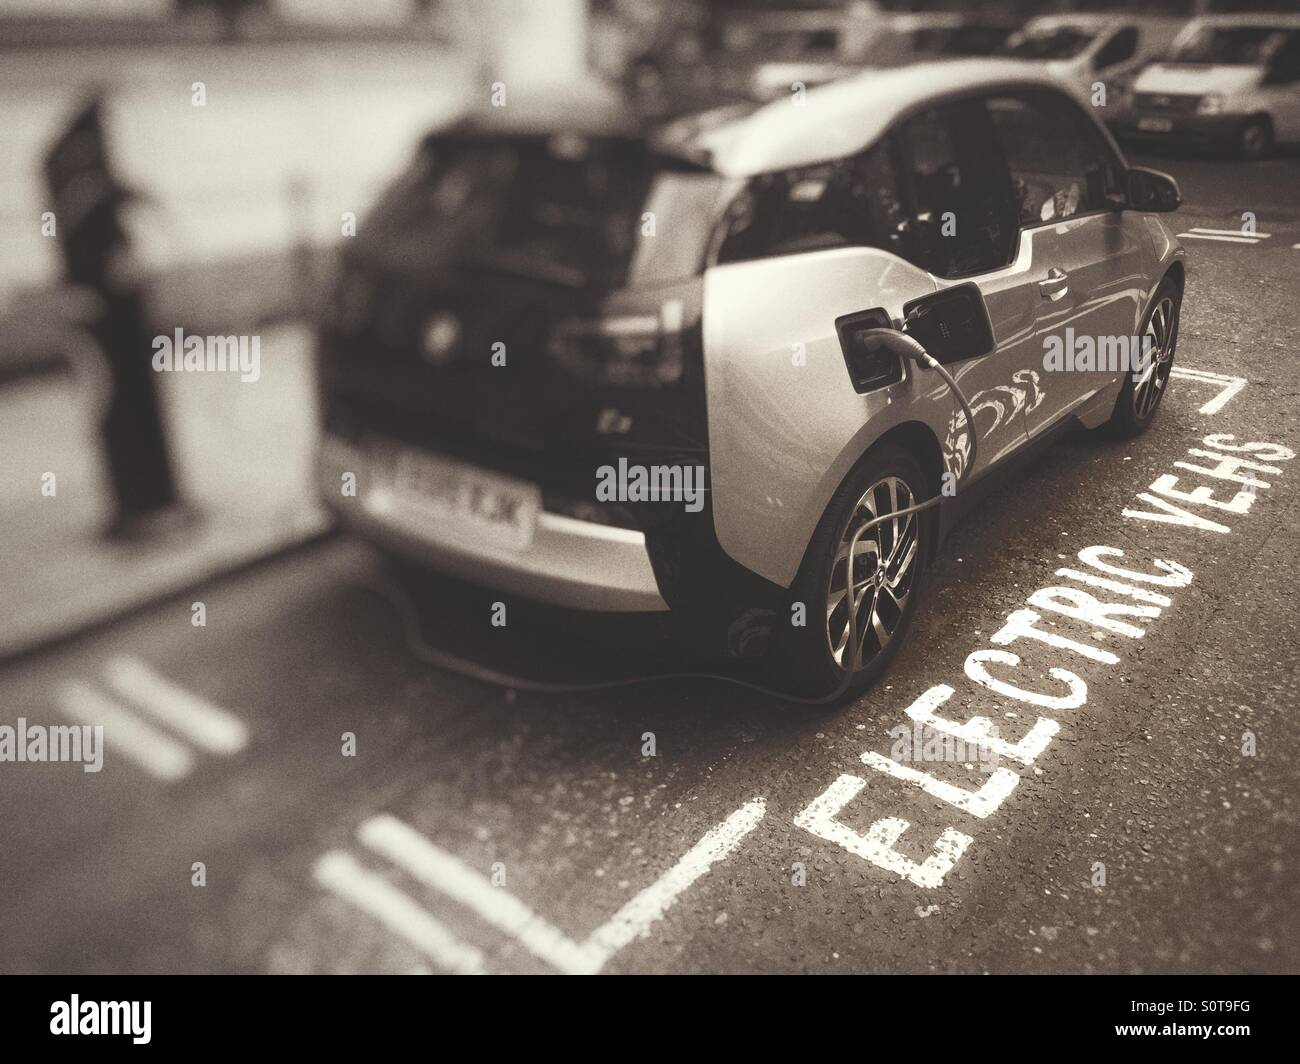 Electric vehicle charging bay - Stock Image